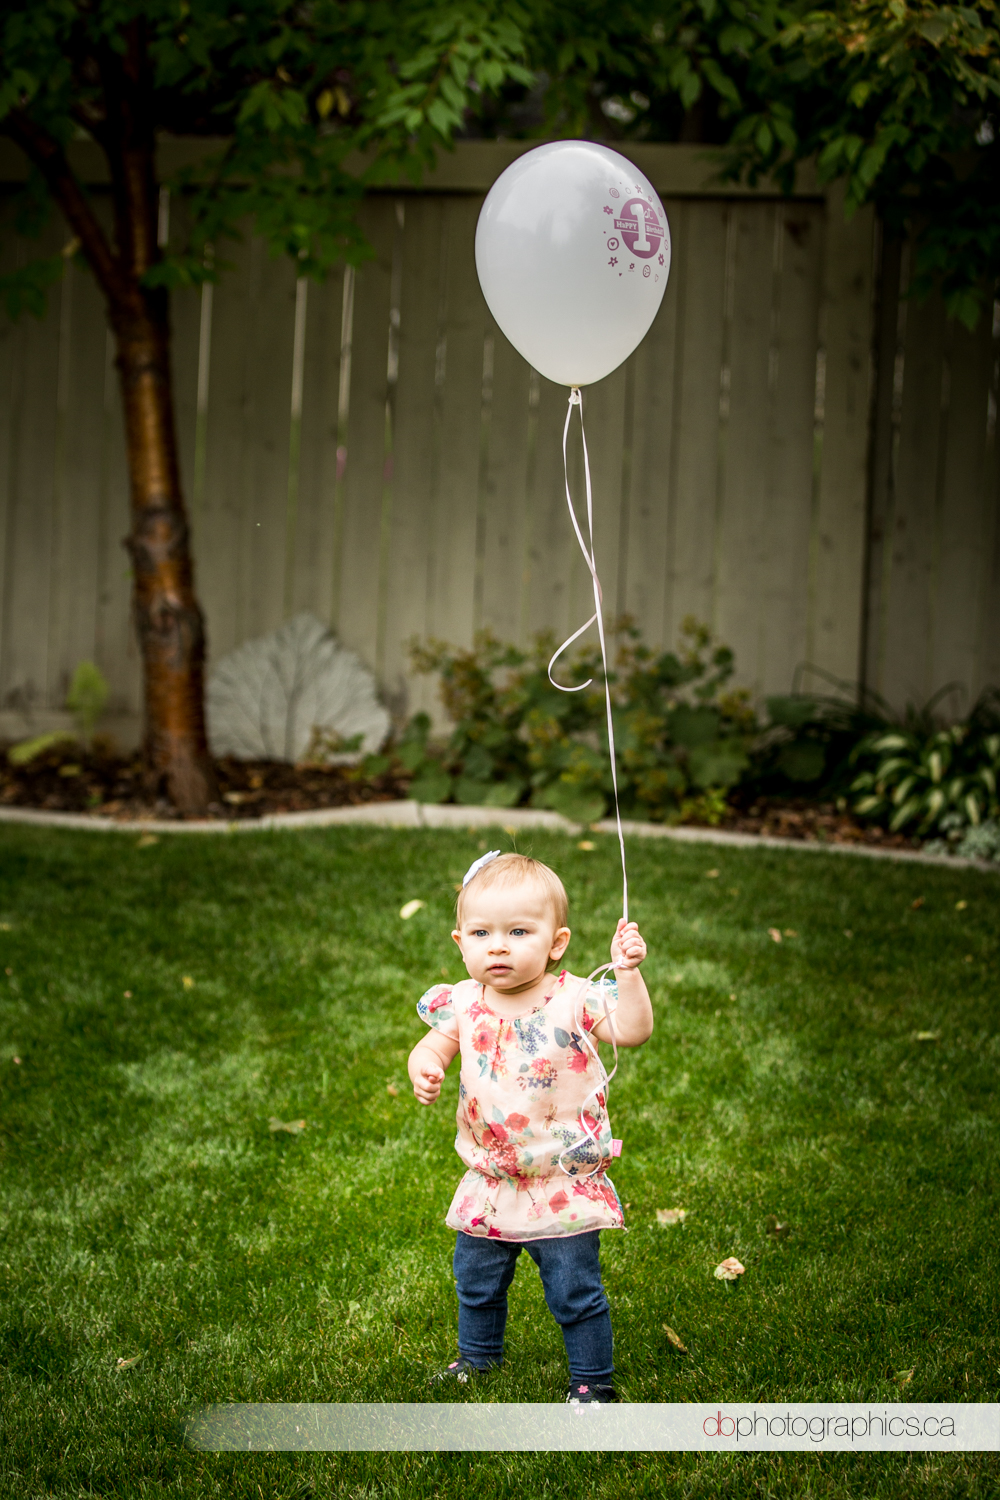 Violet Pipella's 1st Birthday - 20140901 - 0014.jpg